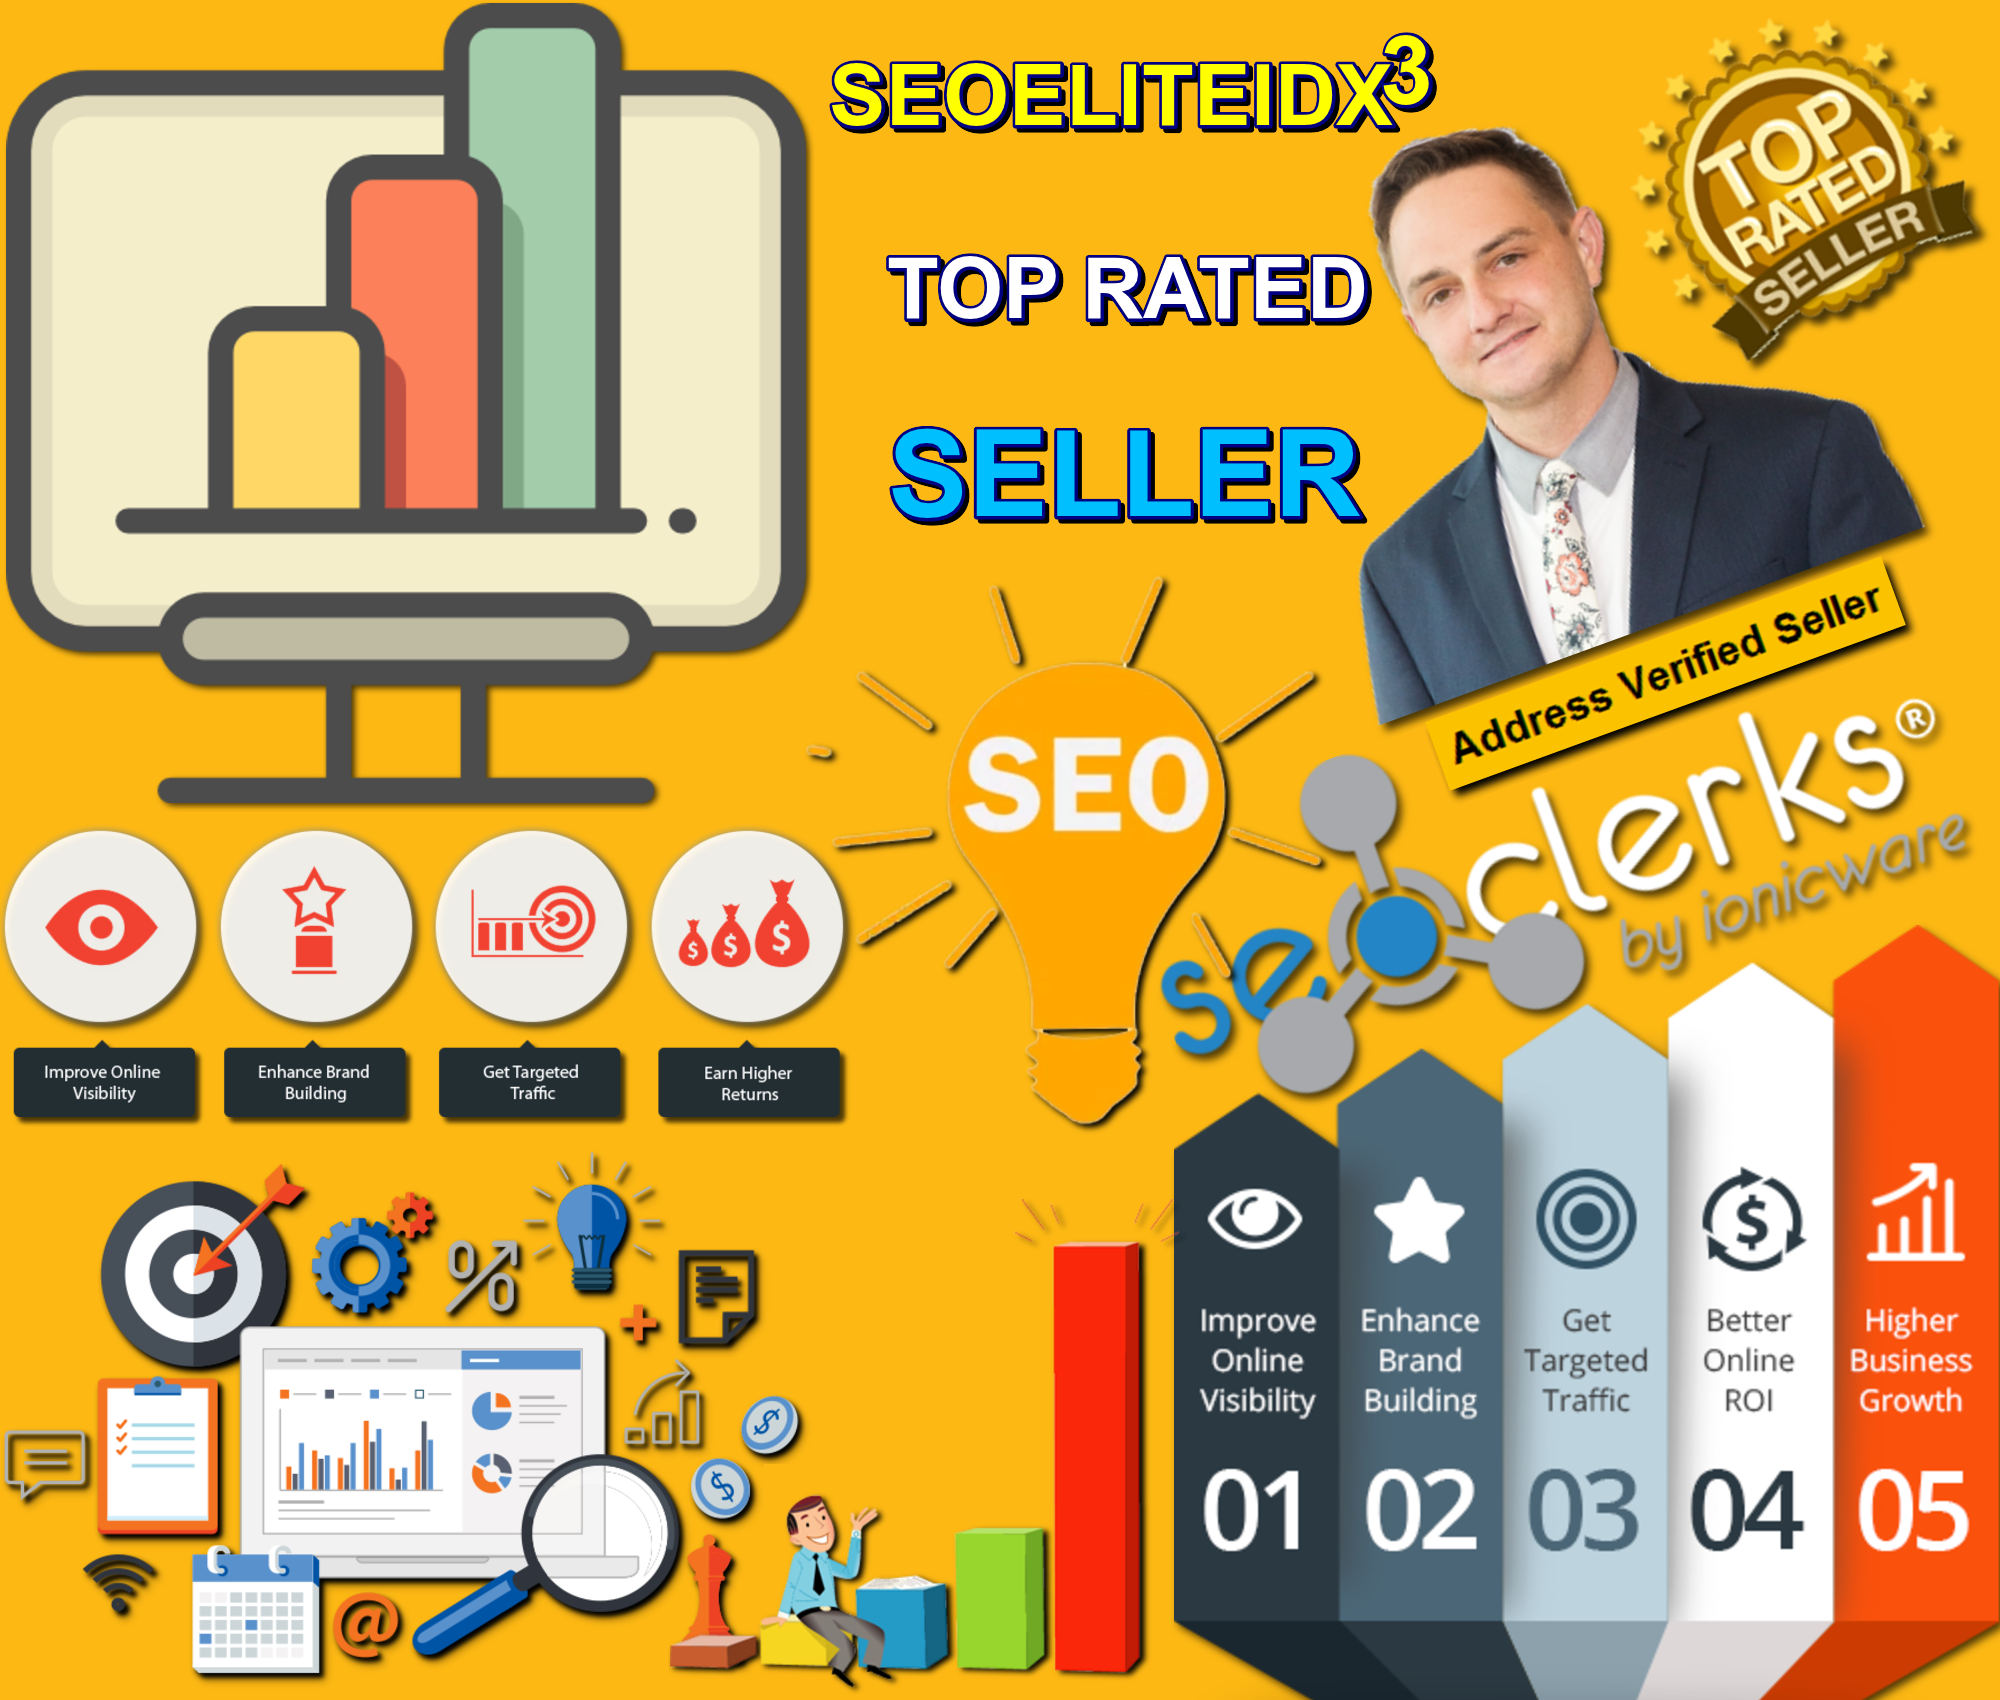 2 Million Worldwide USA Unlimited Websites Targeted Visitors People Hits Traffic High Quality SEO Services 40+ Million Social Media Group AdSense Safe